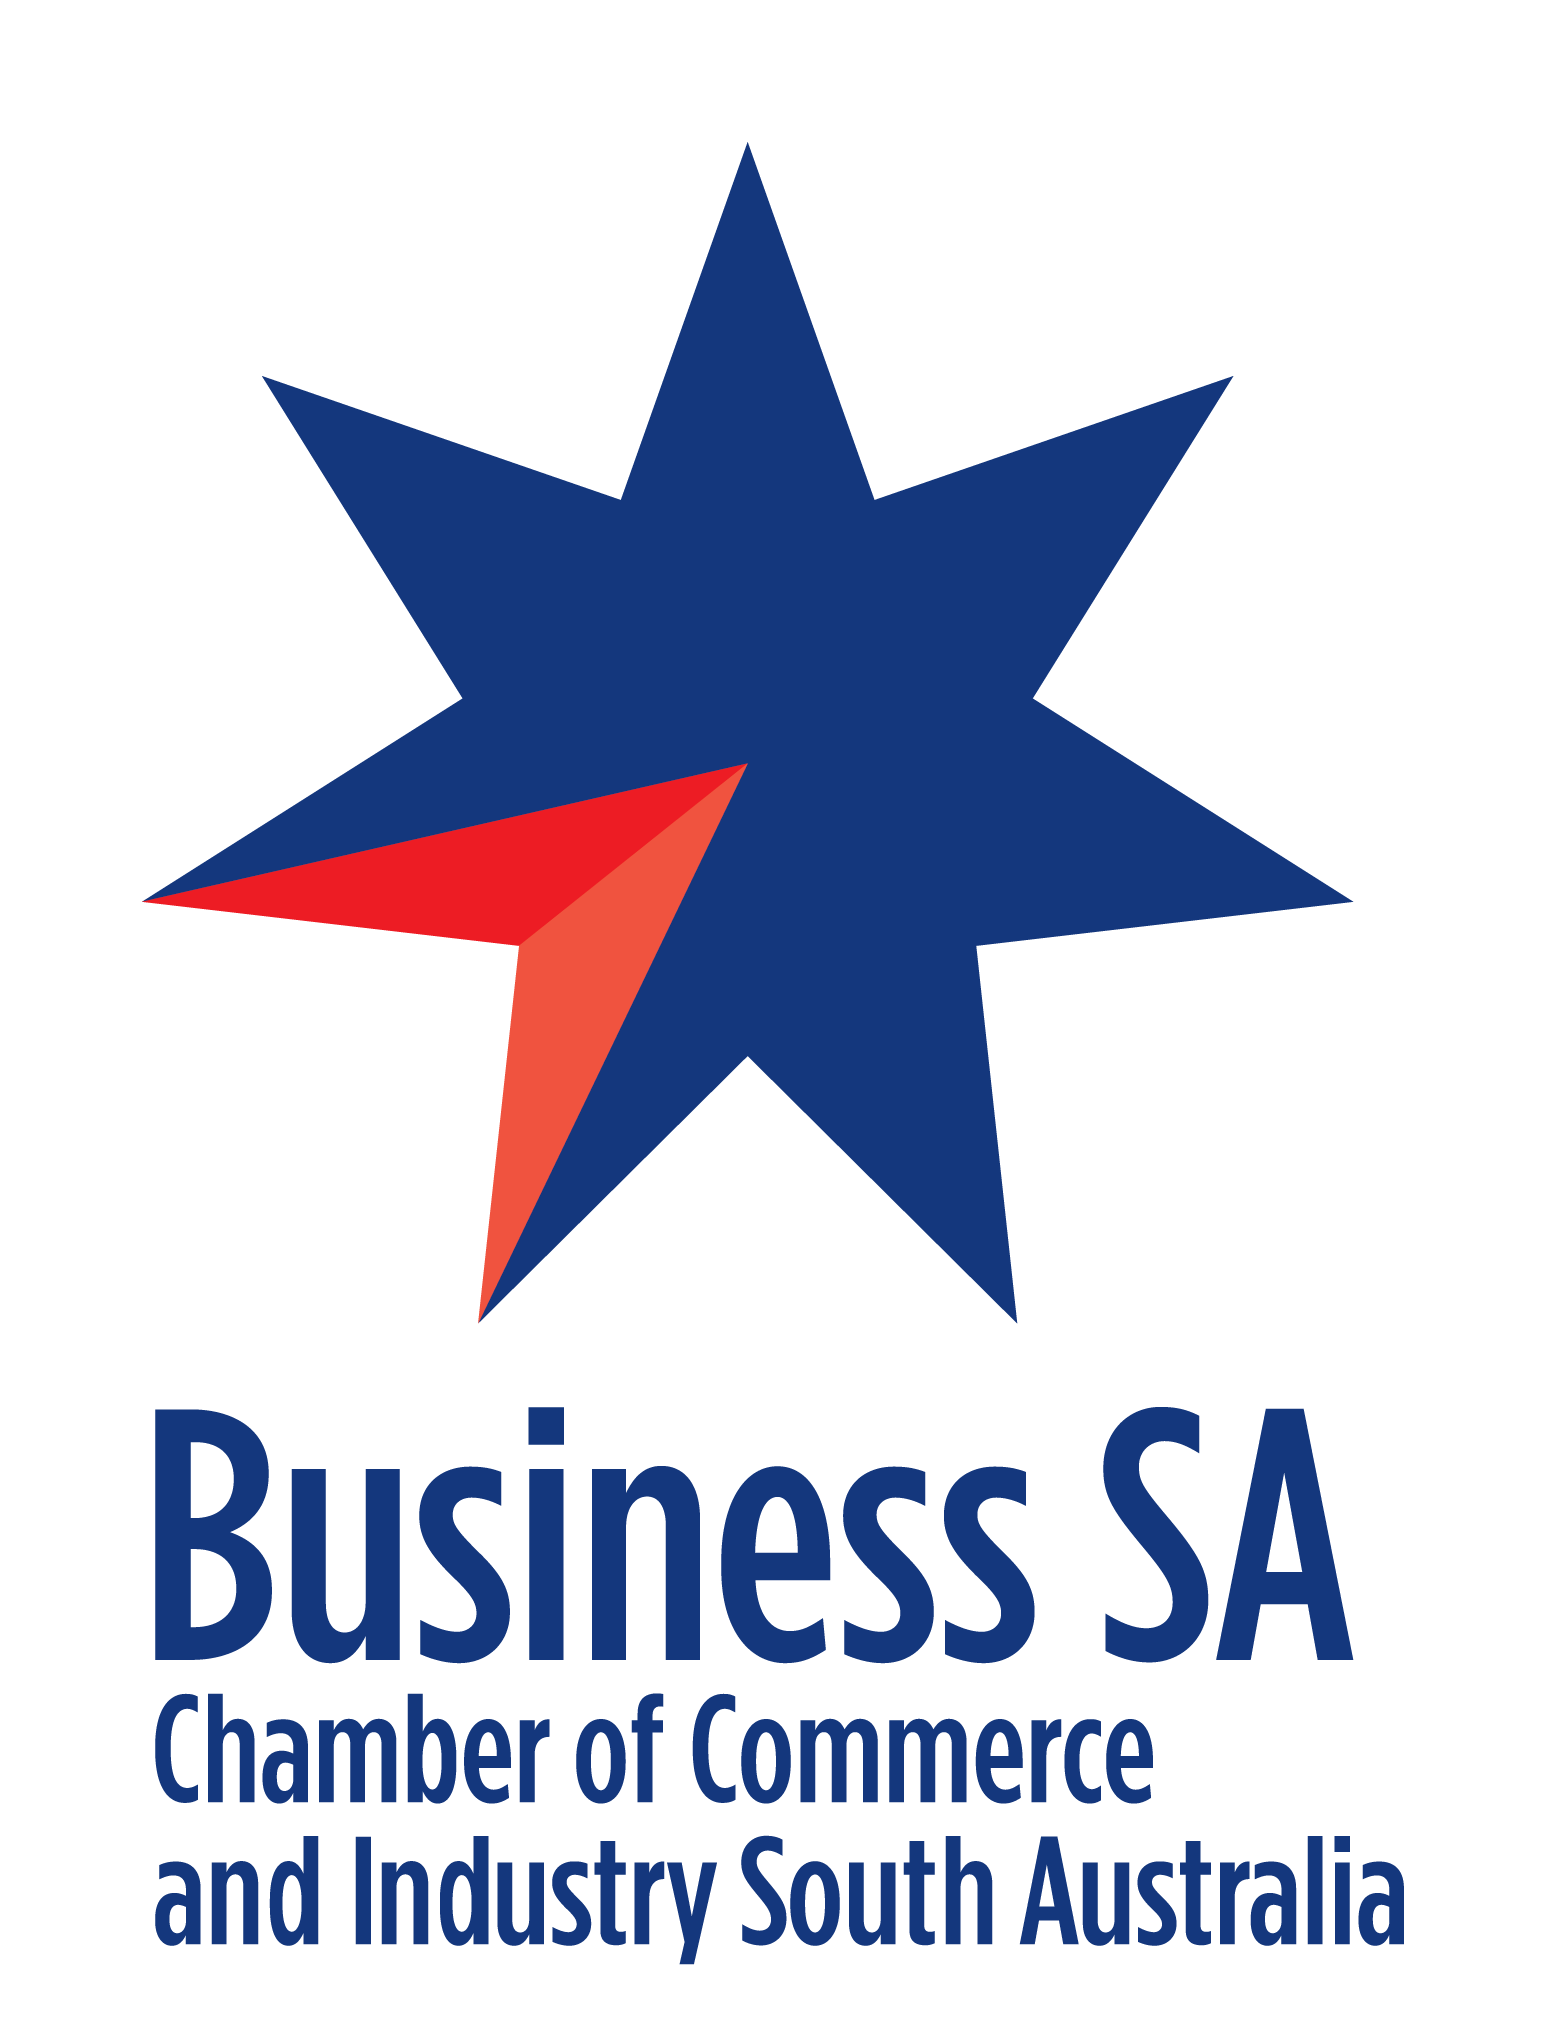 Business SA - Chamber of Commerce and Industry South Australia